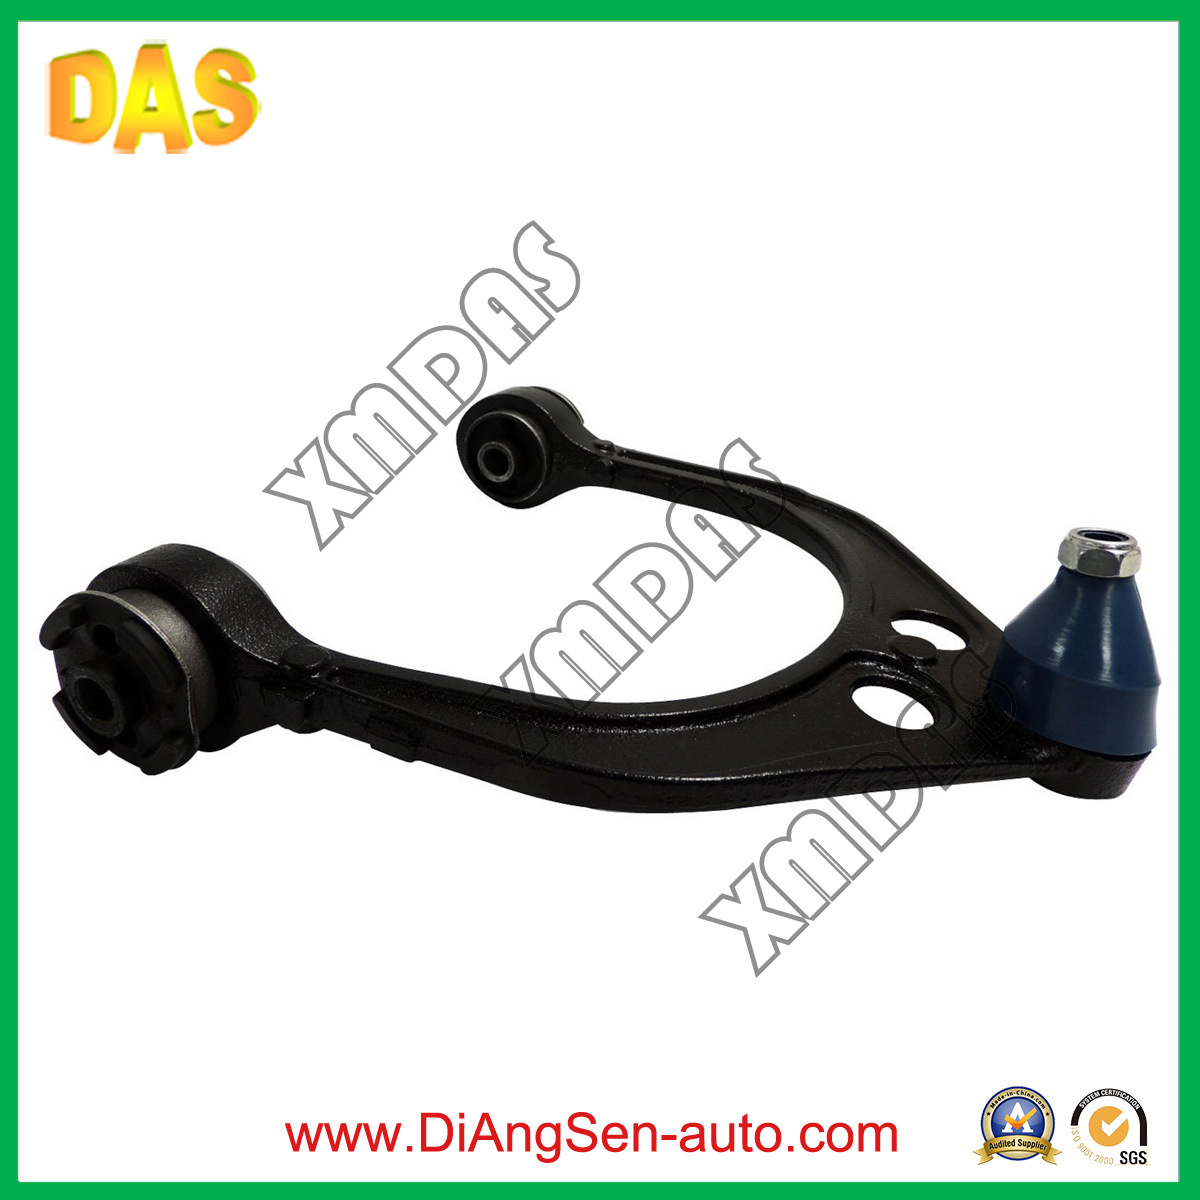 FOR CHRYSLER 300 C 2004-2012 WISHBONE CONTROL ARM FRONT RIGHT